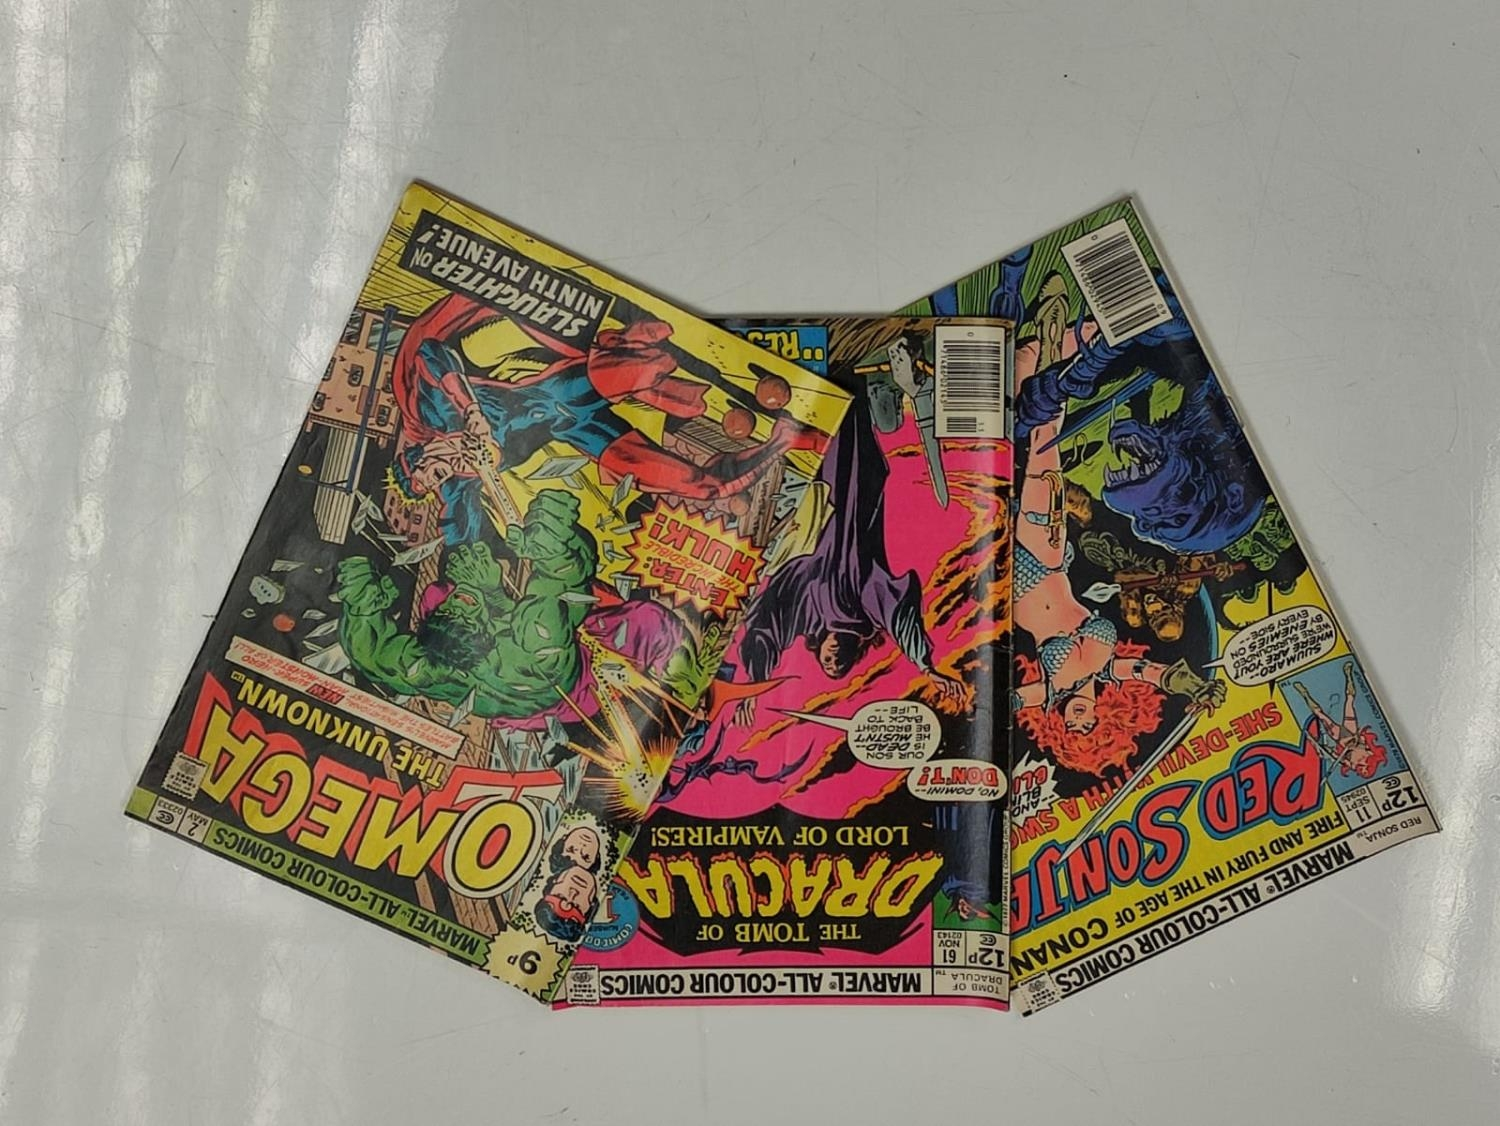 5 editions of Special Vintage Marvel Comics including 'The Tomb of Dracula'. - Image 10 of 15